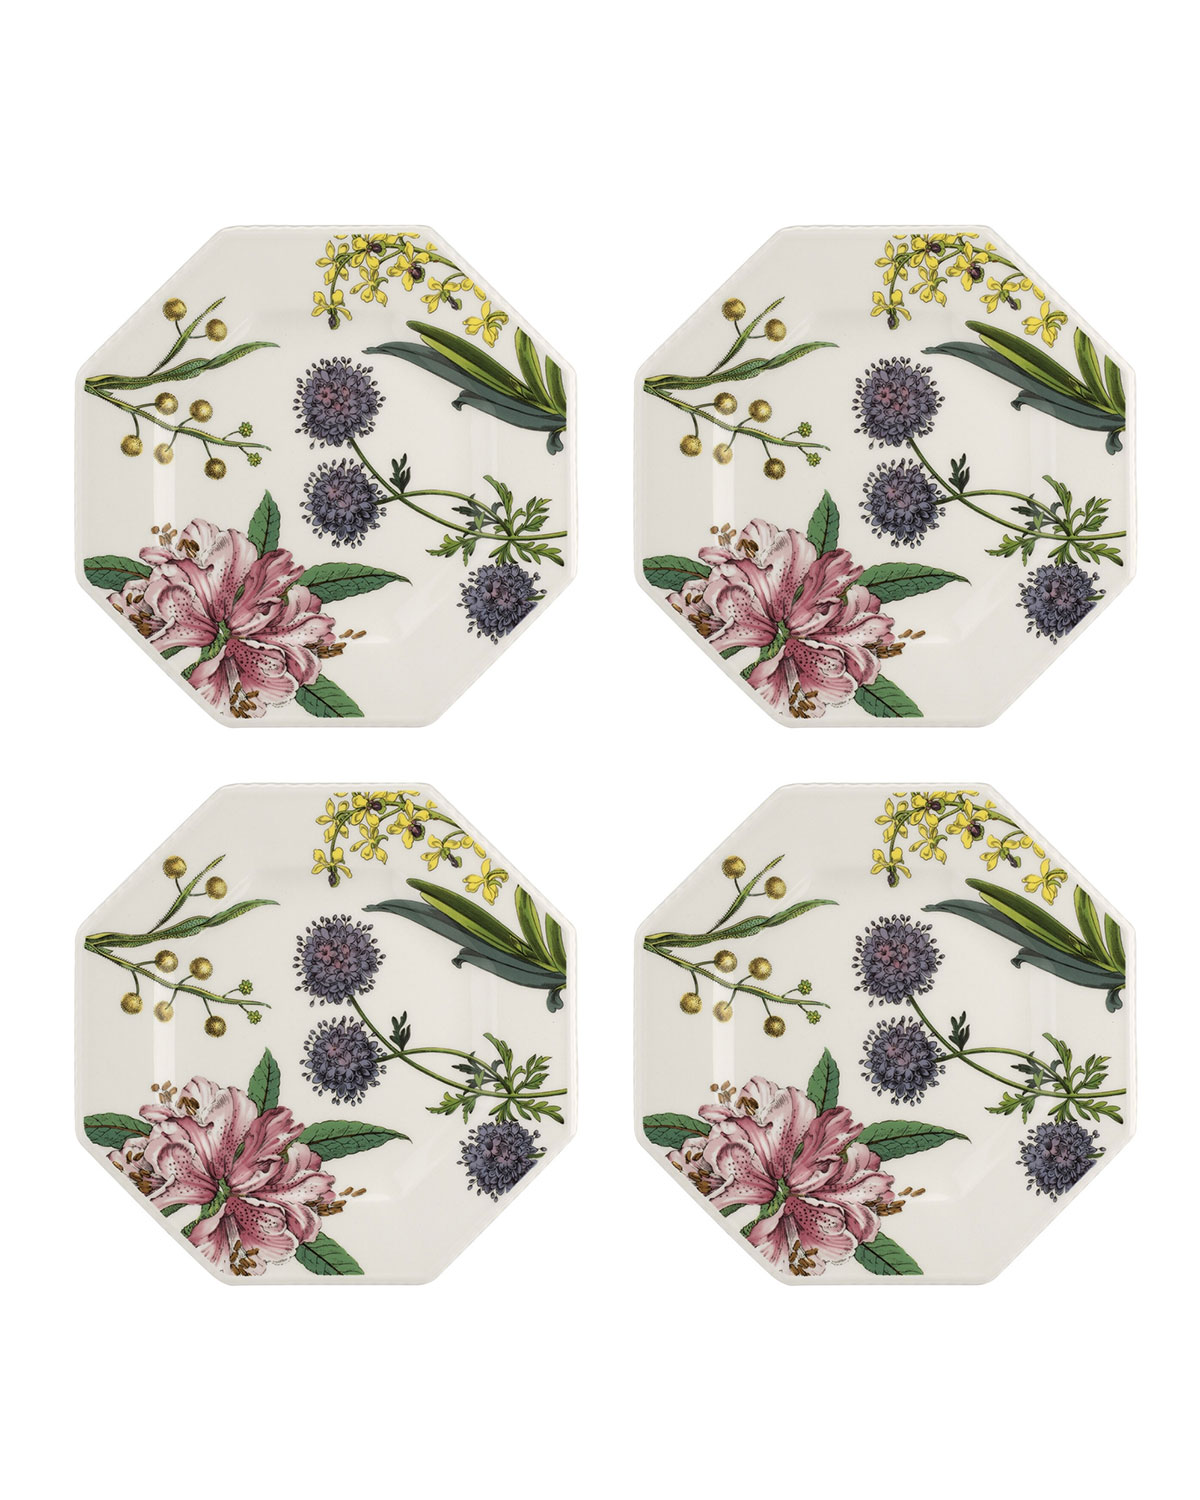 Spode Stafford Blooms Octagonal Plates, Set of 4